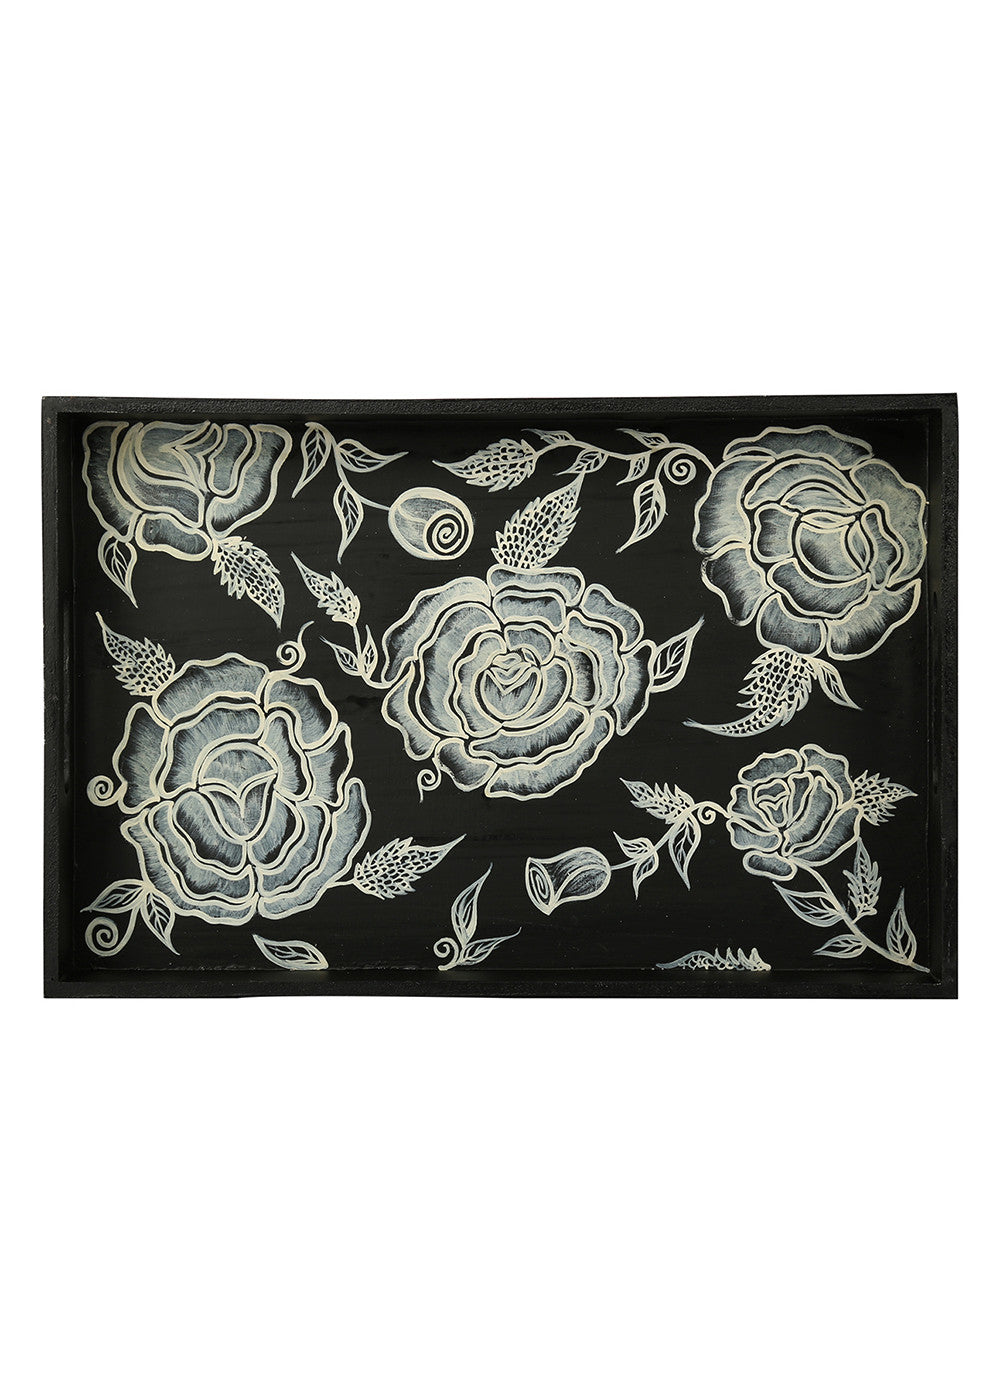 Hand-painted Classy Florets ExoticTray - RANGRAGE